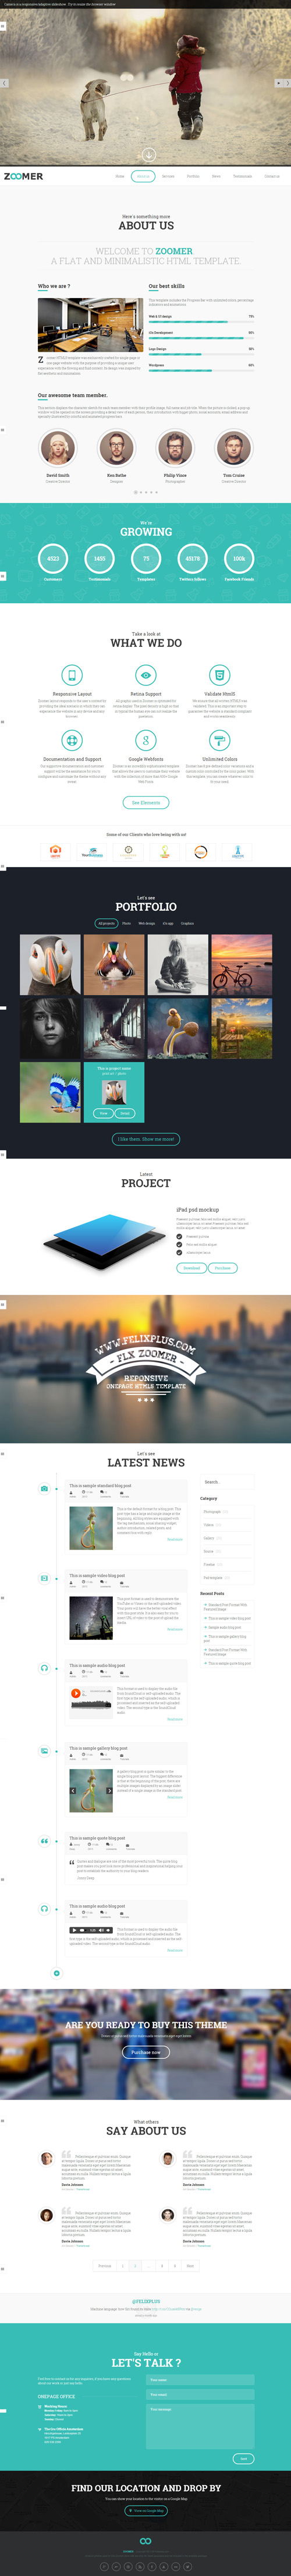 Single page website design 70 best one page website templates free.